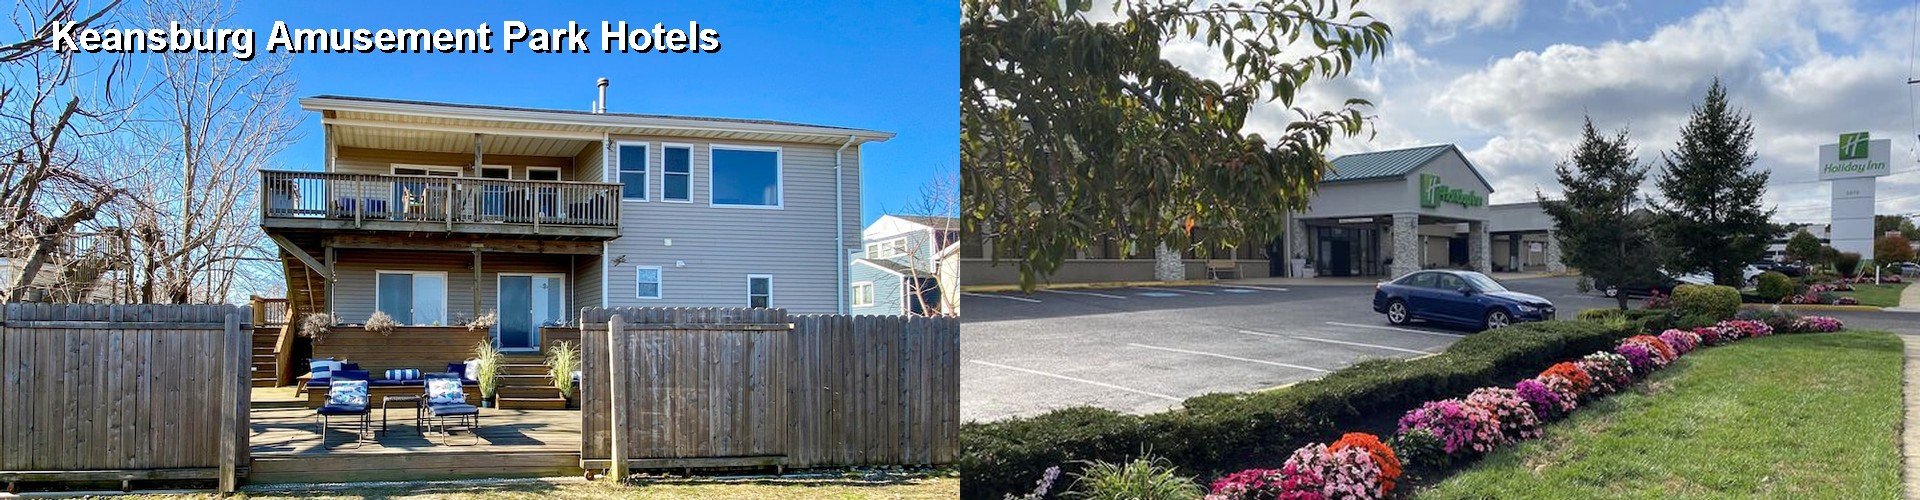 5 Best Hotels Near Keansburg Amut Park